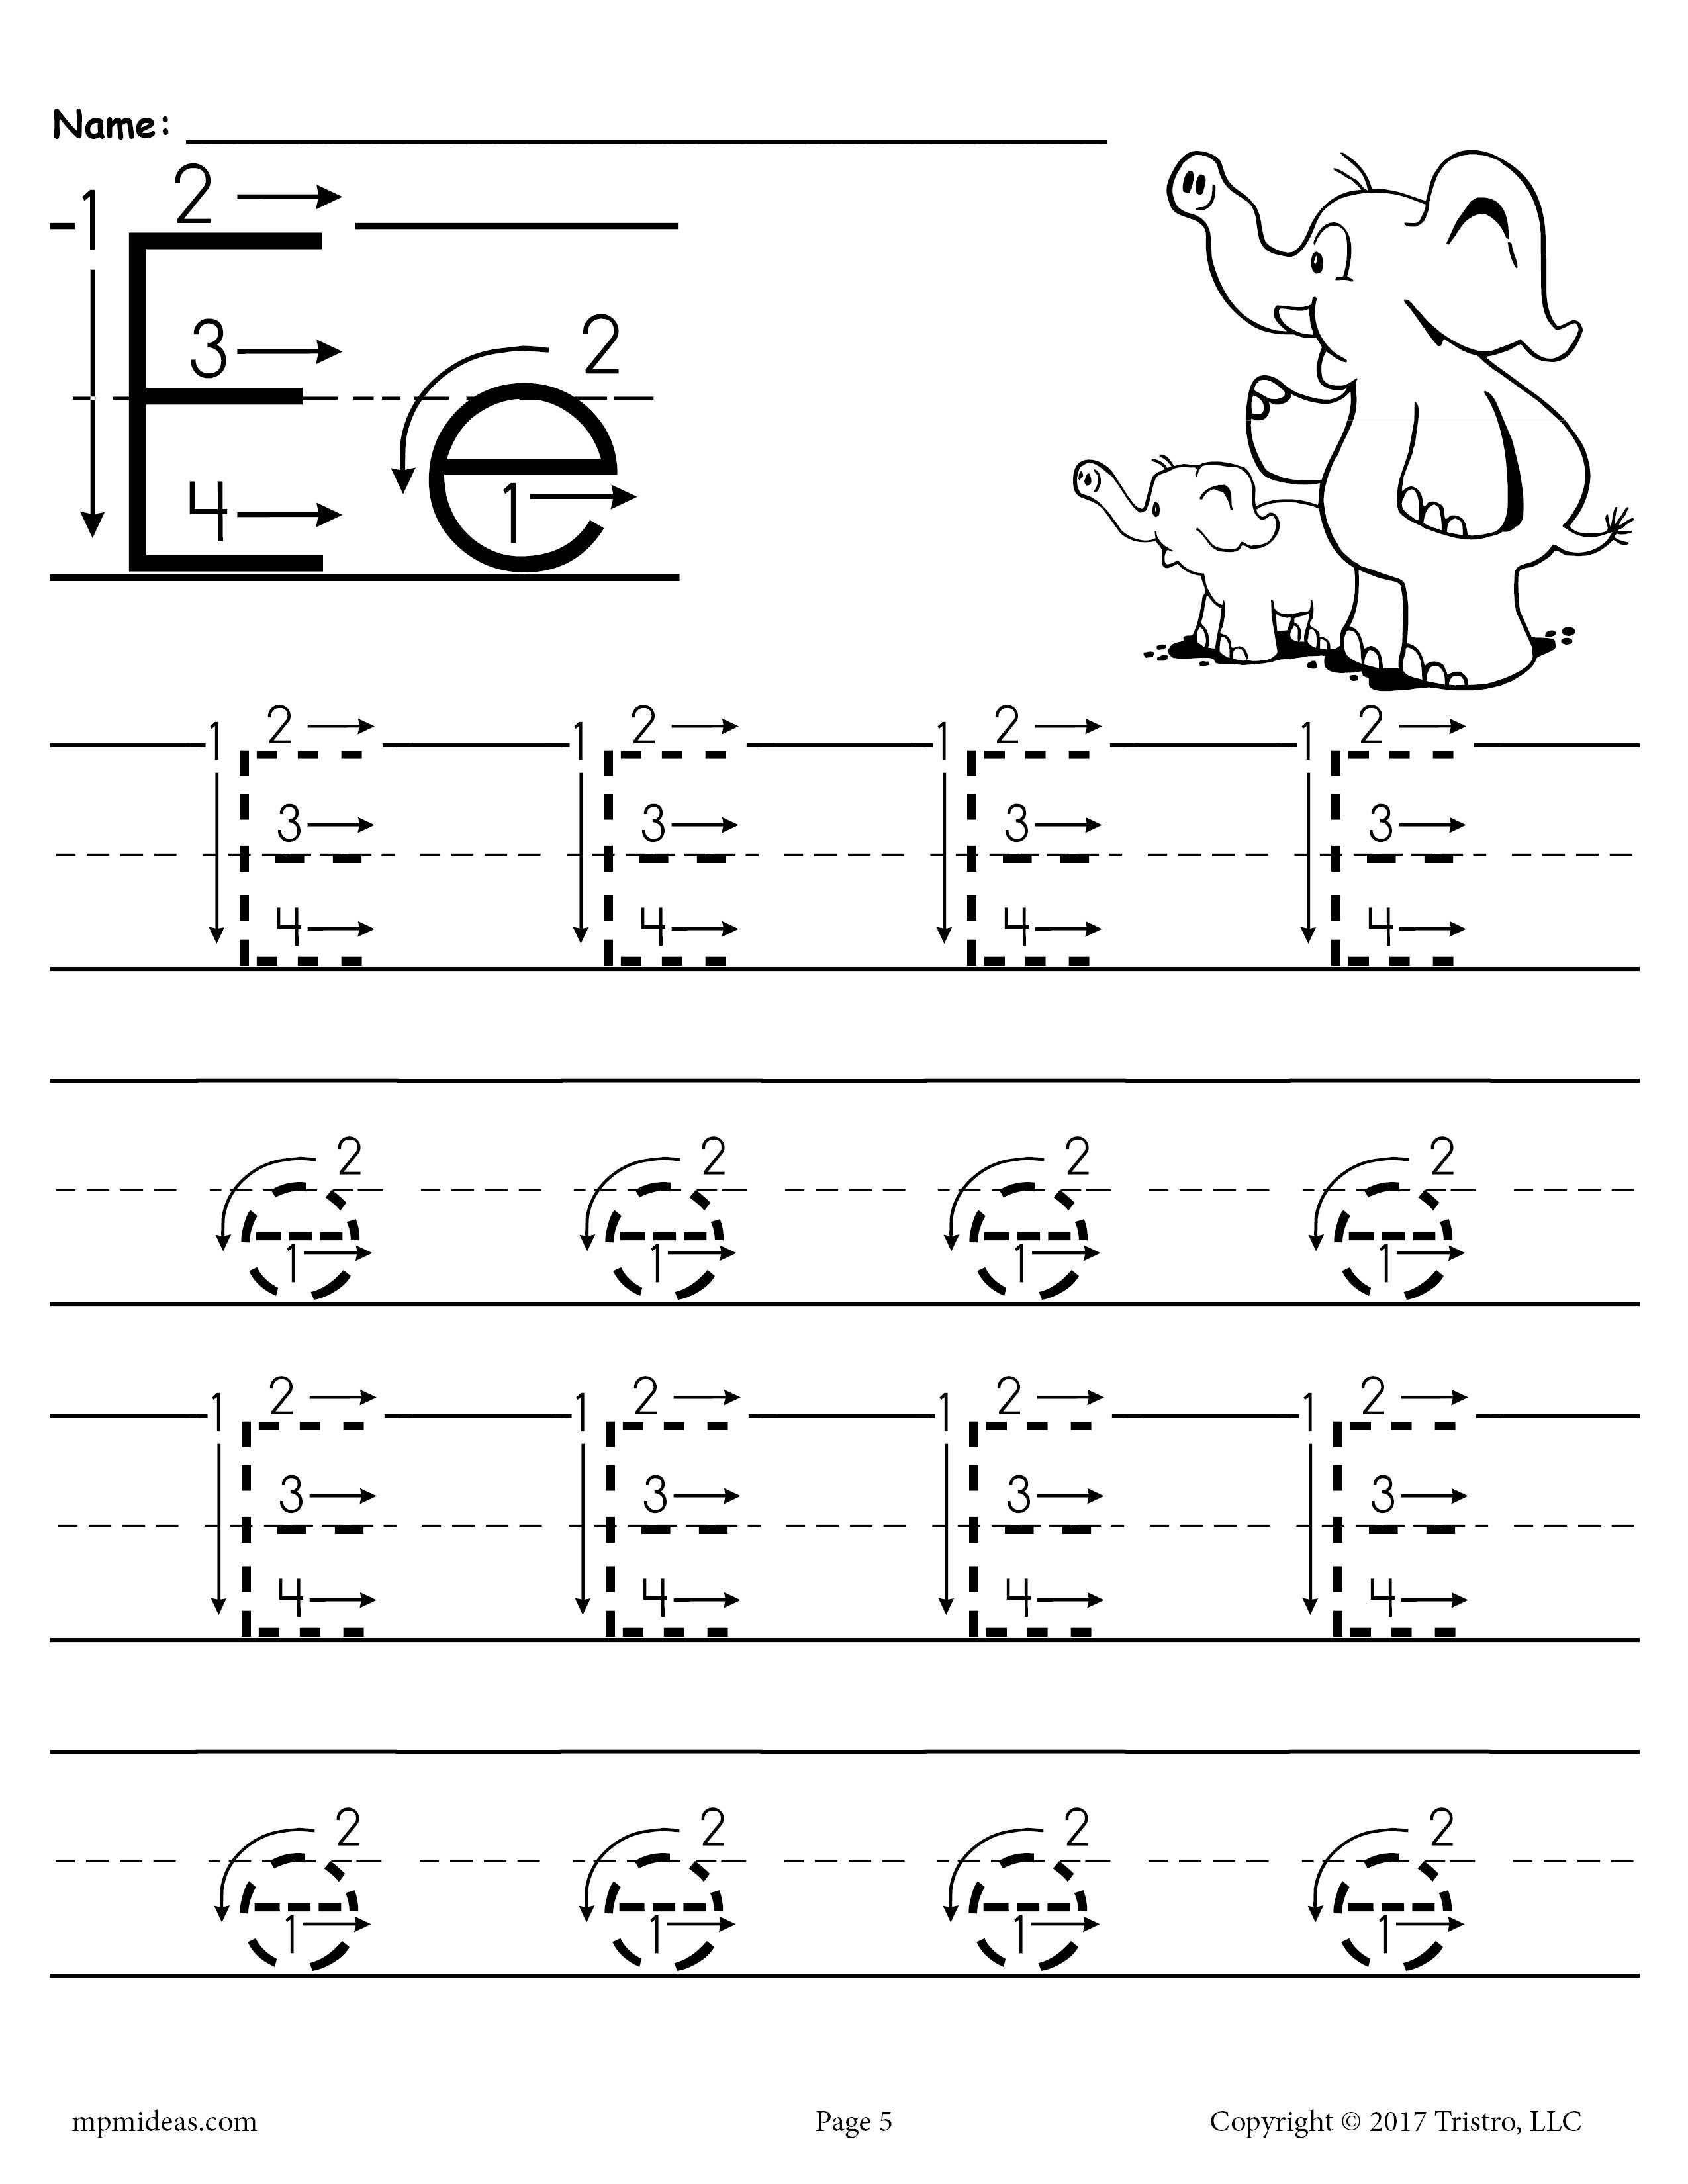 Printable Letter E Tracing Worksheet With Number And Arrow Guides Letter Tracing Printables Letter E Worksheets Tracing Worksheets [ 3300 x 2550 Pixel ]